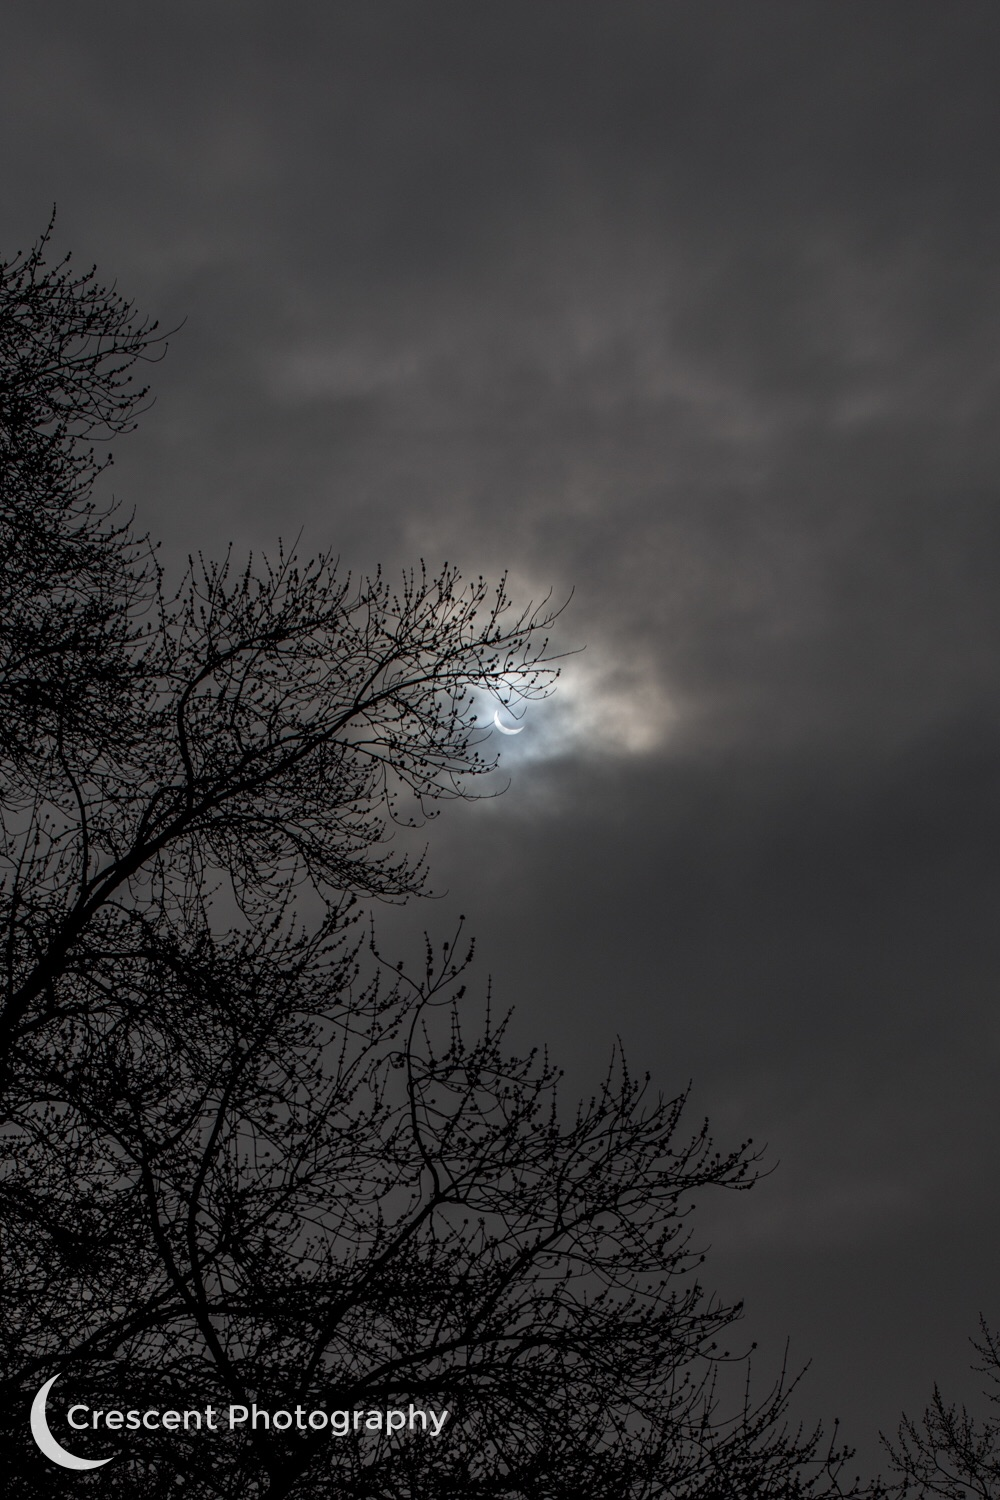 Eclipse through the trees